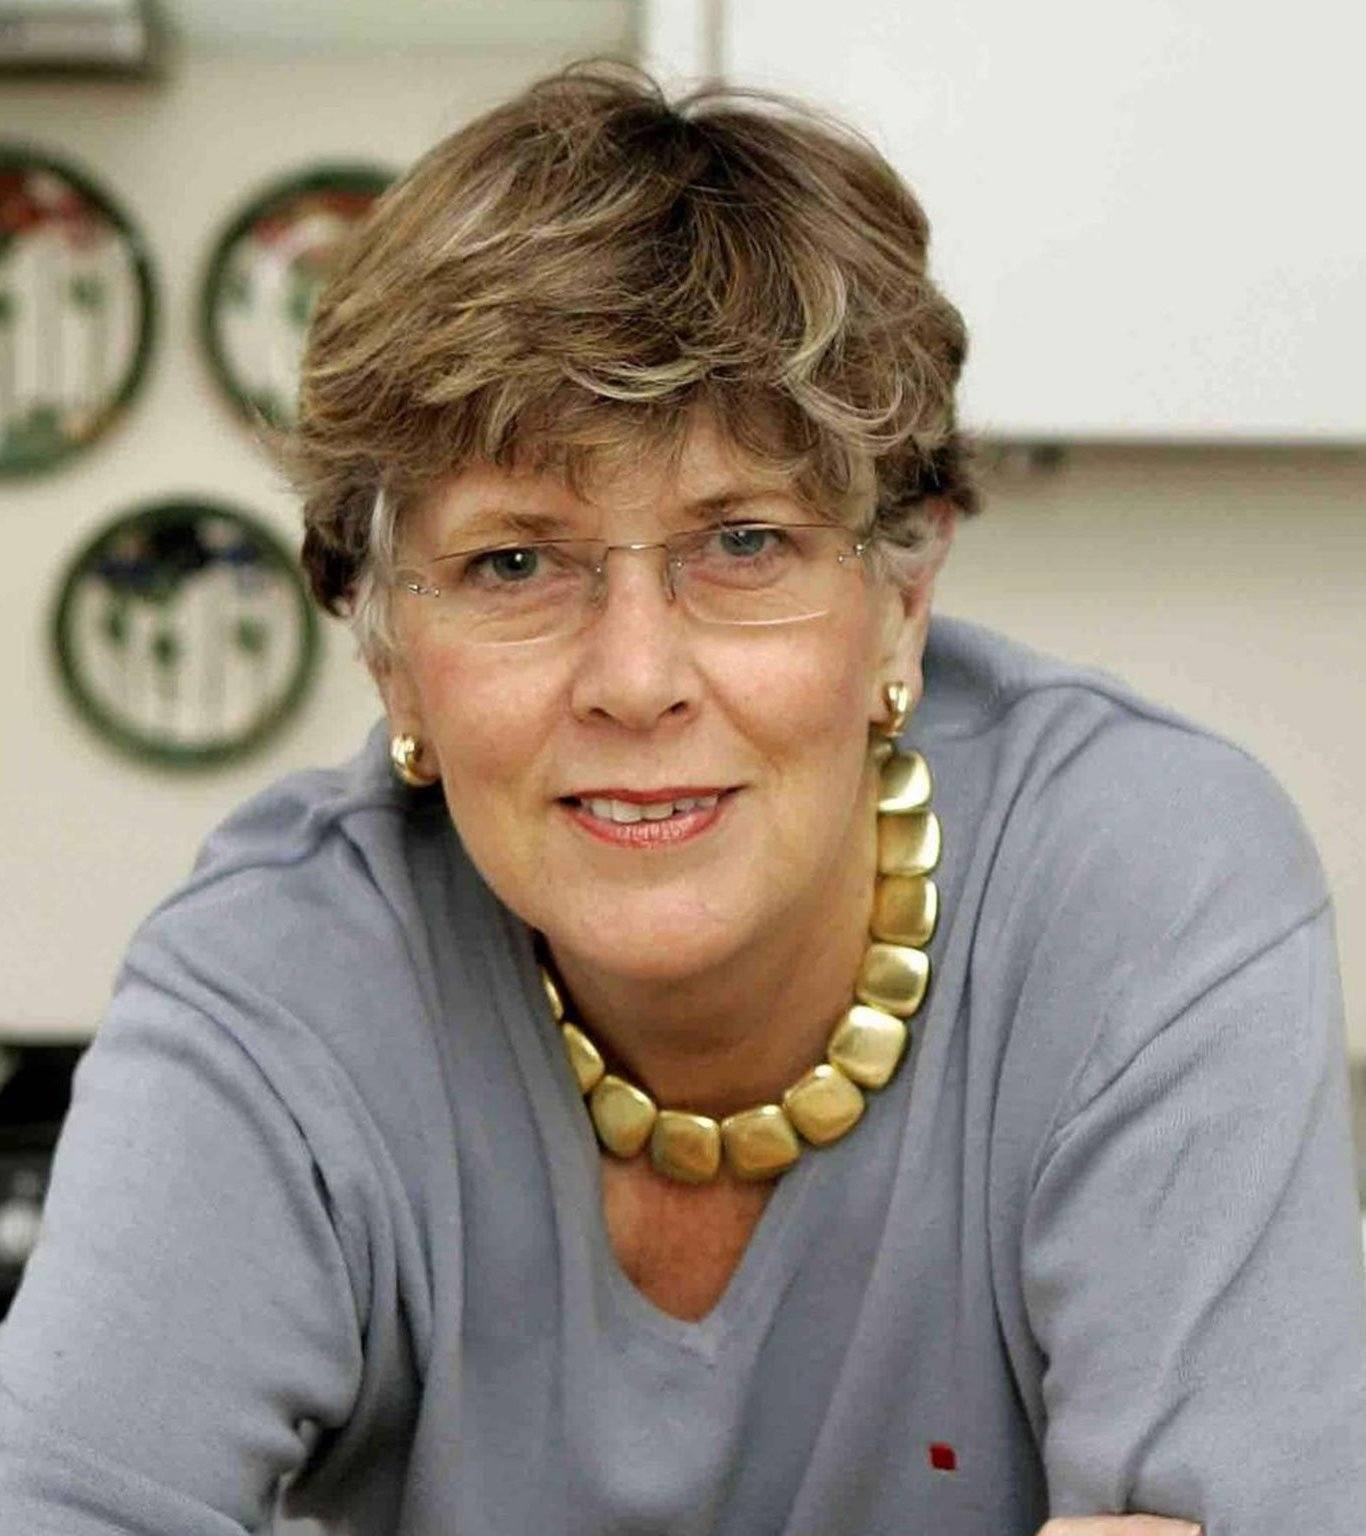 21 Pru Leith PA 26 Things You Didn't Know About Bake Off's Prue Leith